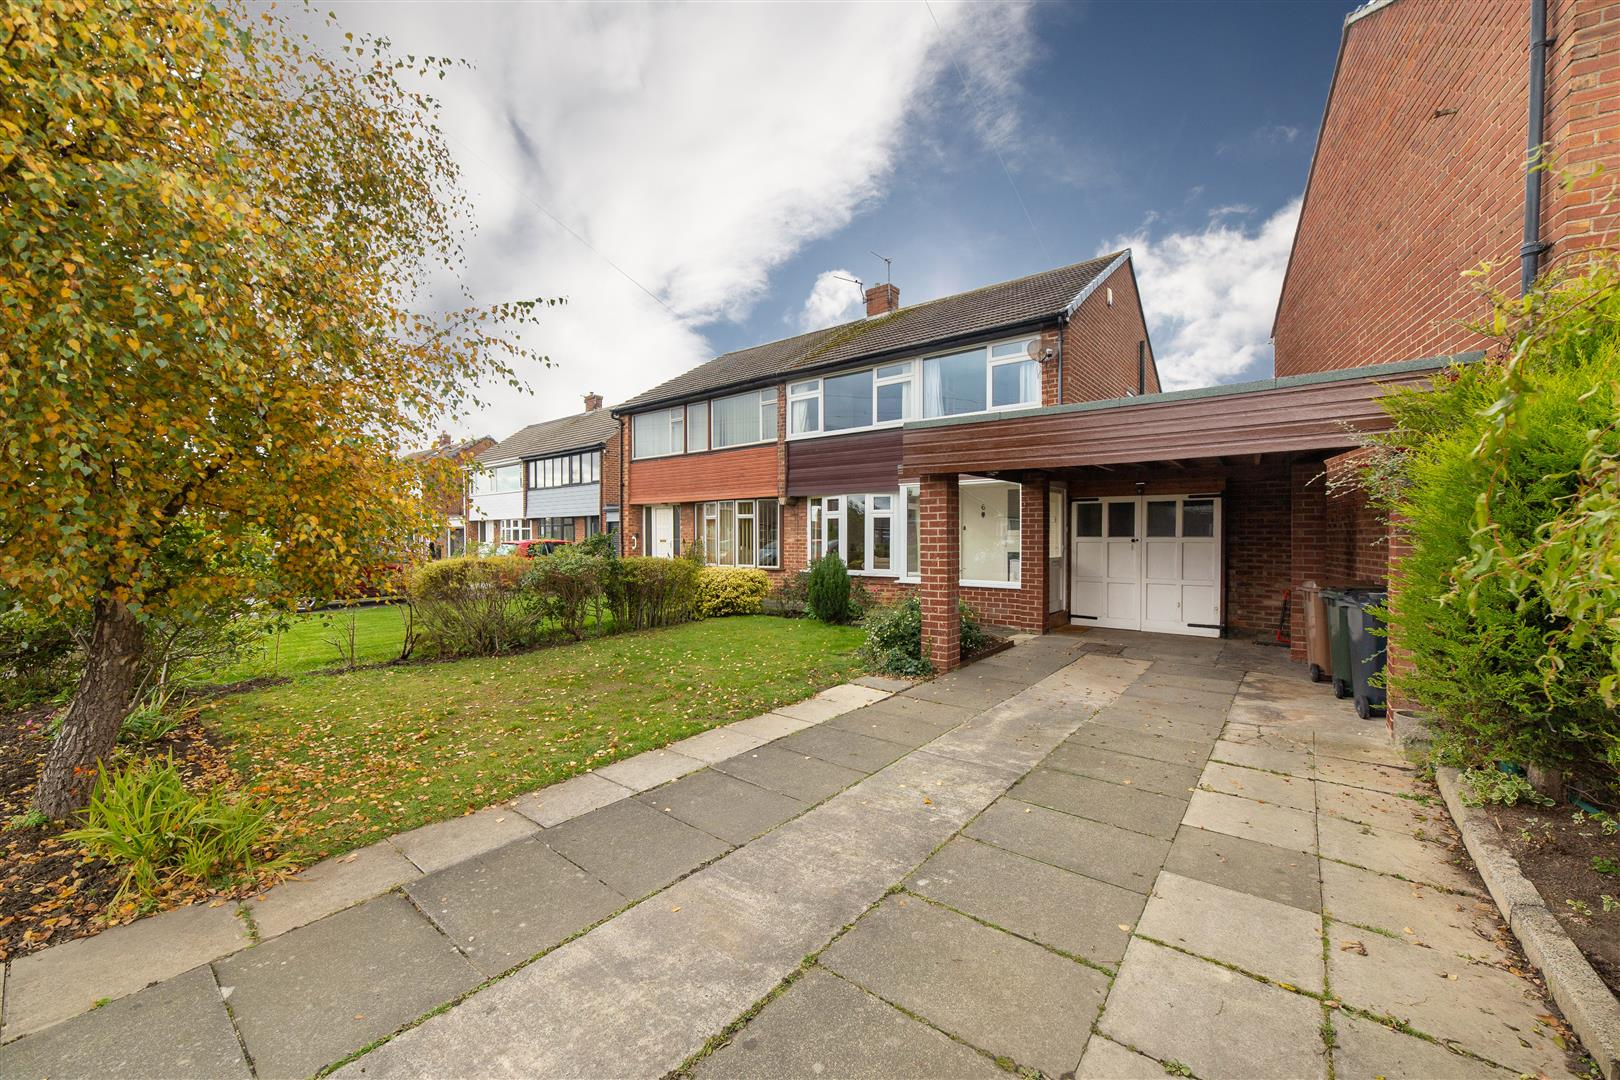 3 bed semi-detached house for sale in Wideopen, NE13 6JP - Property Image 1